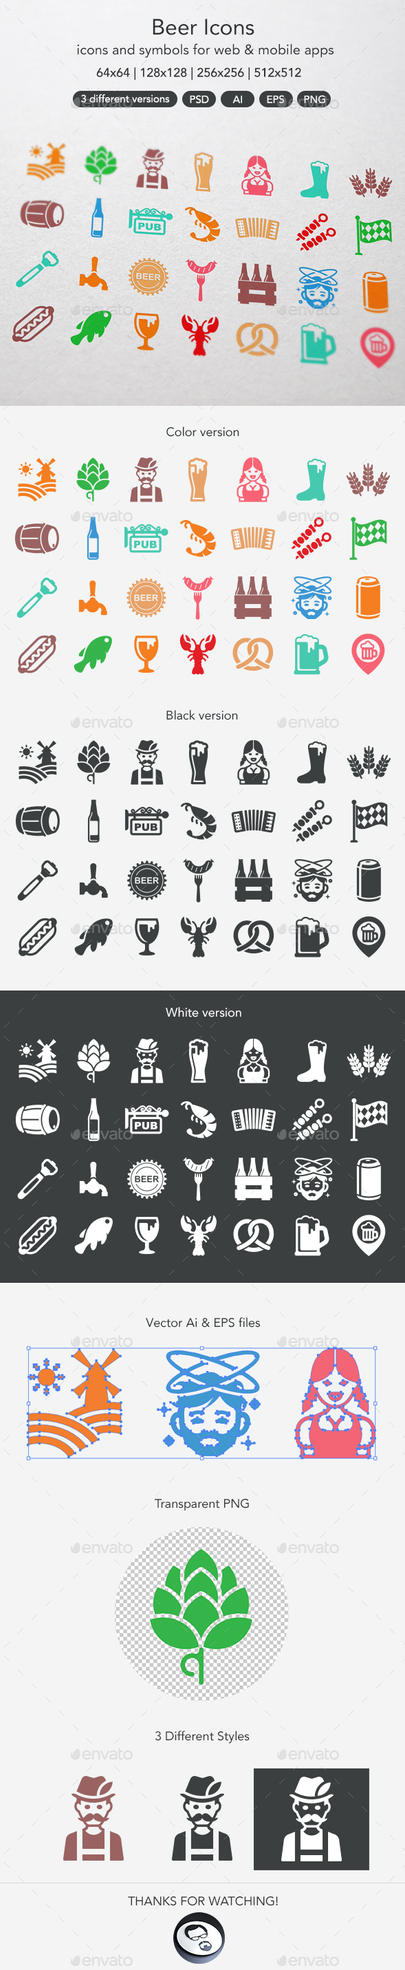 Beer Icons by ottoson